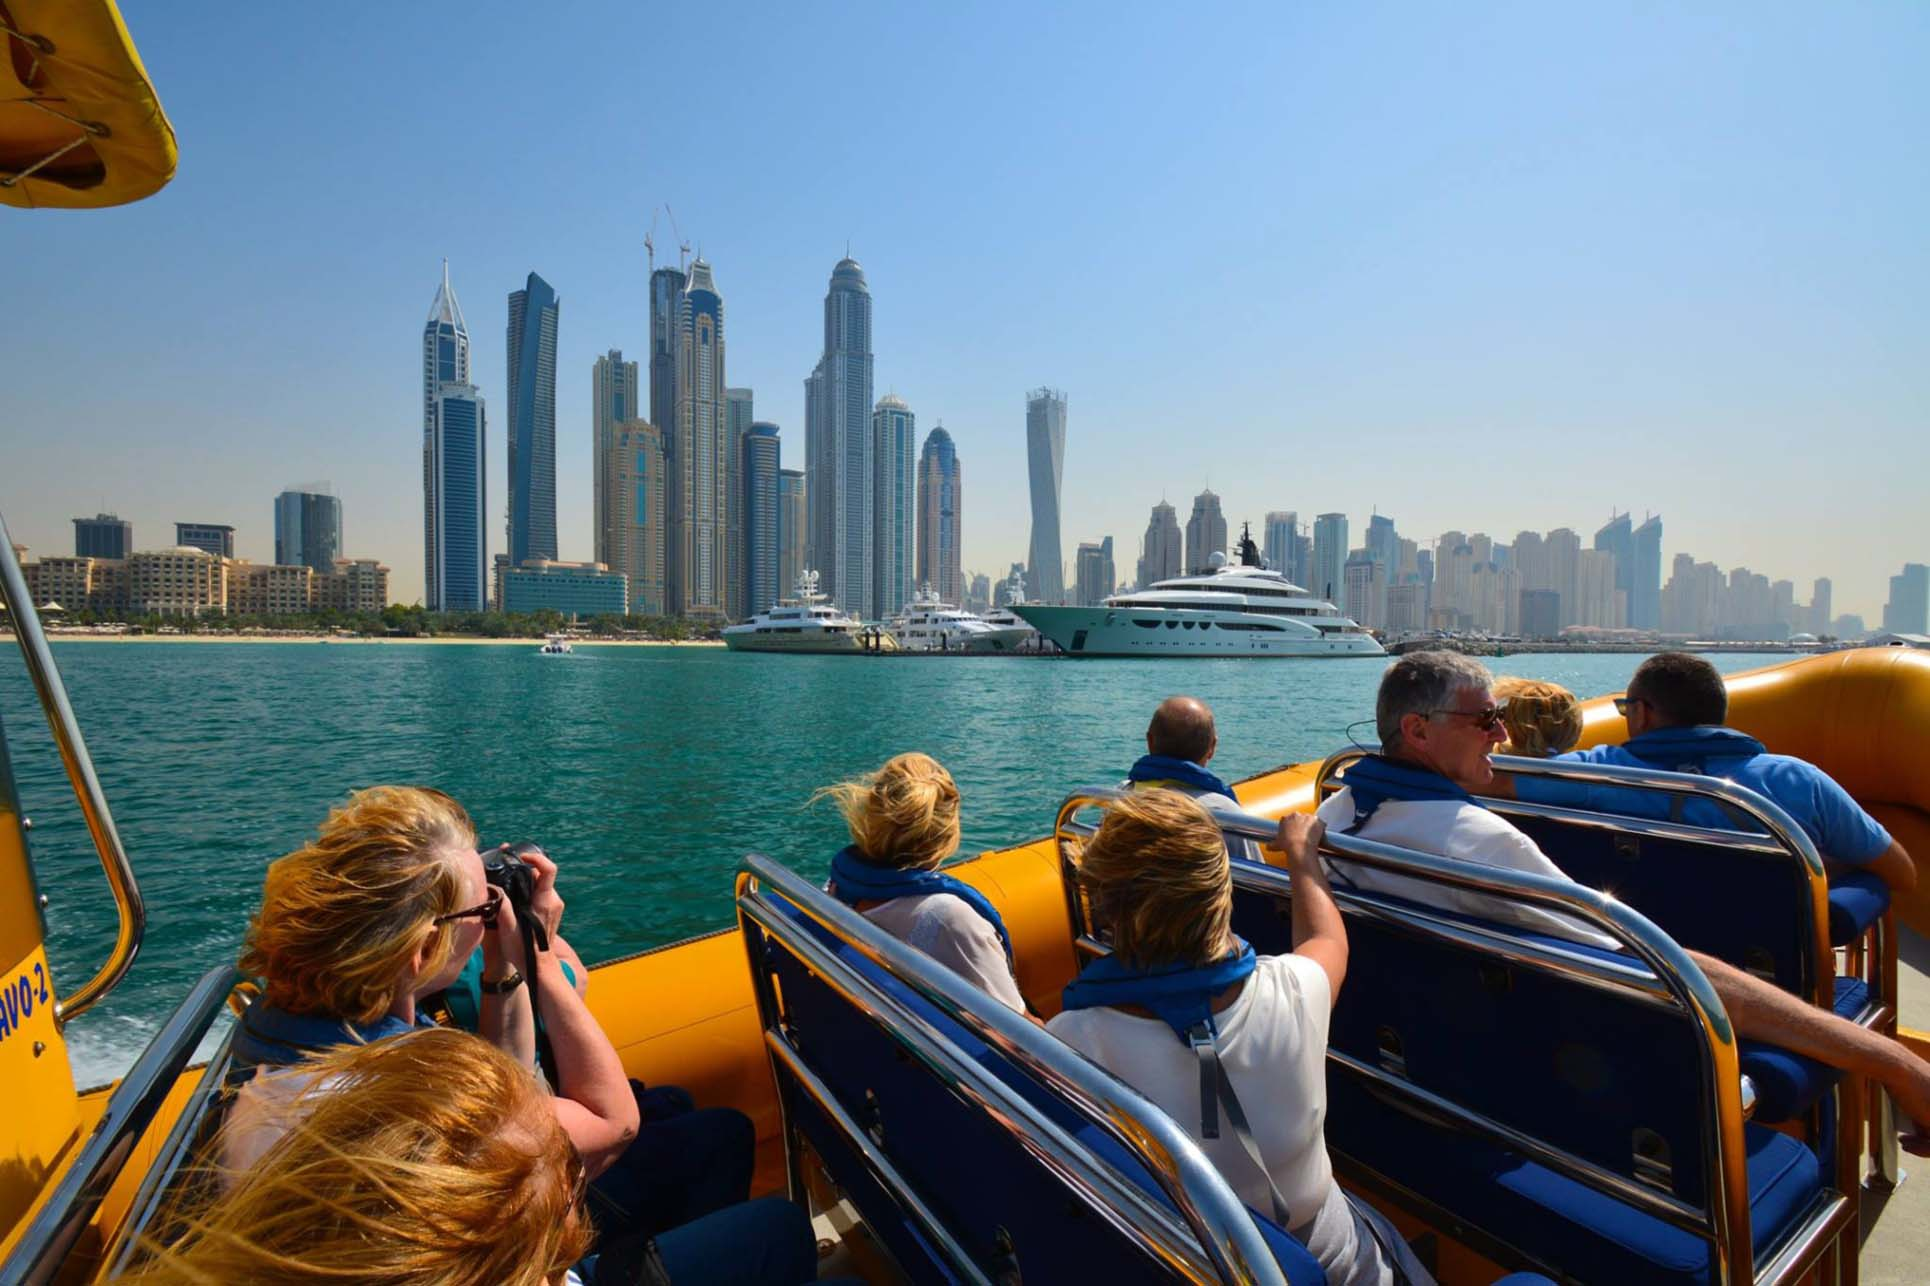 Day 2 : Half day Dubai Tour with Dhow Cruise